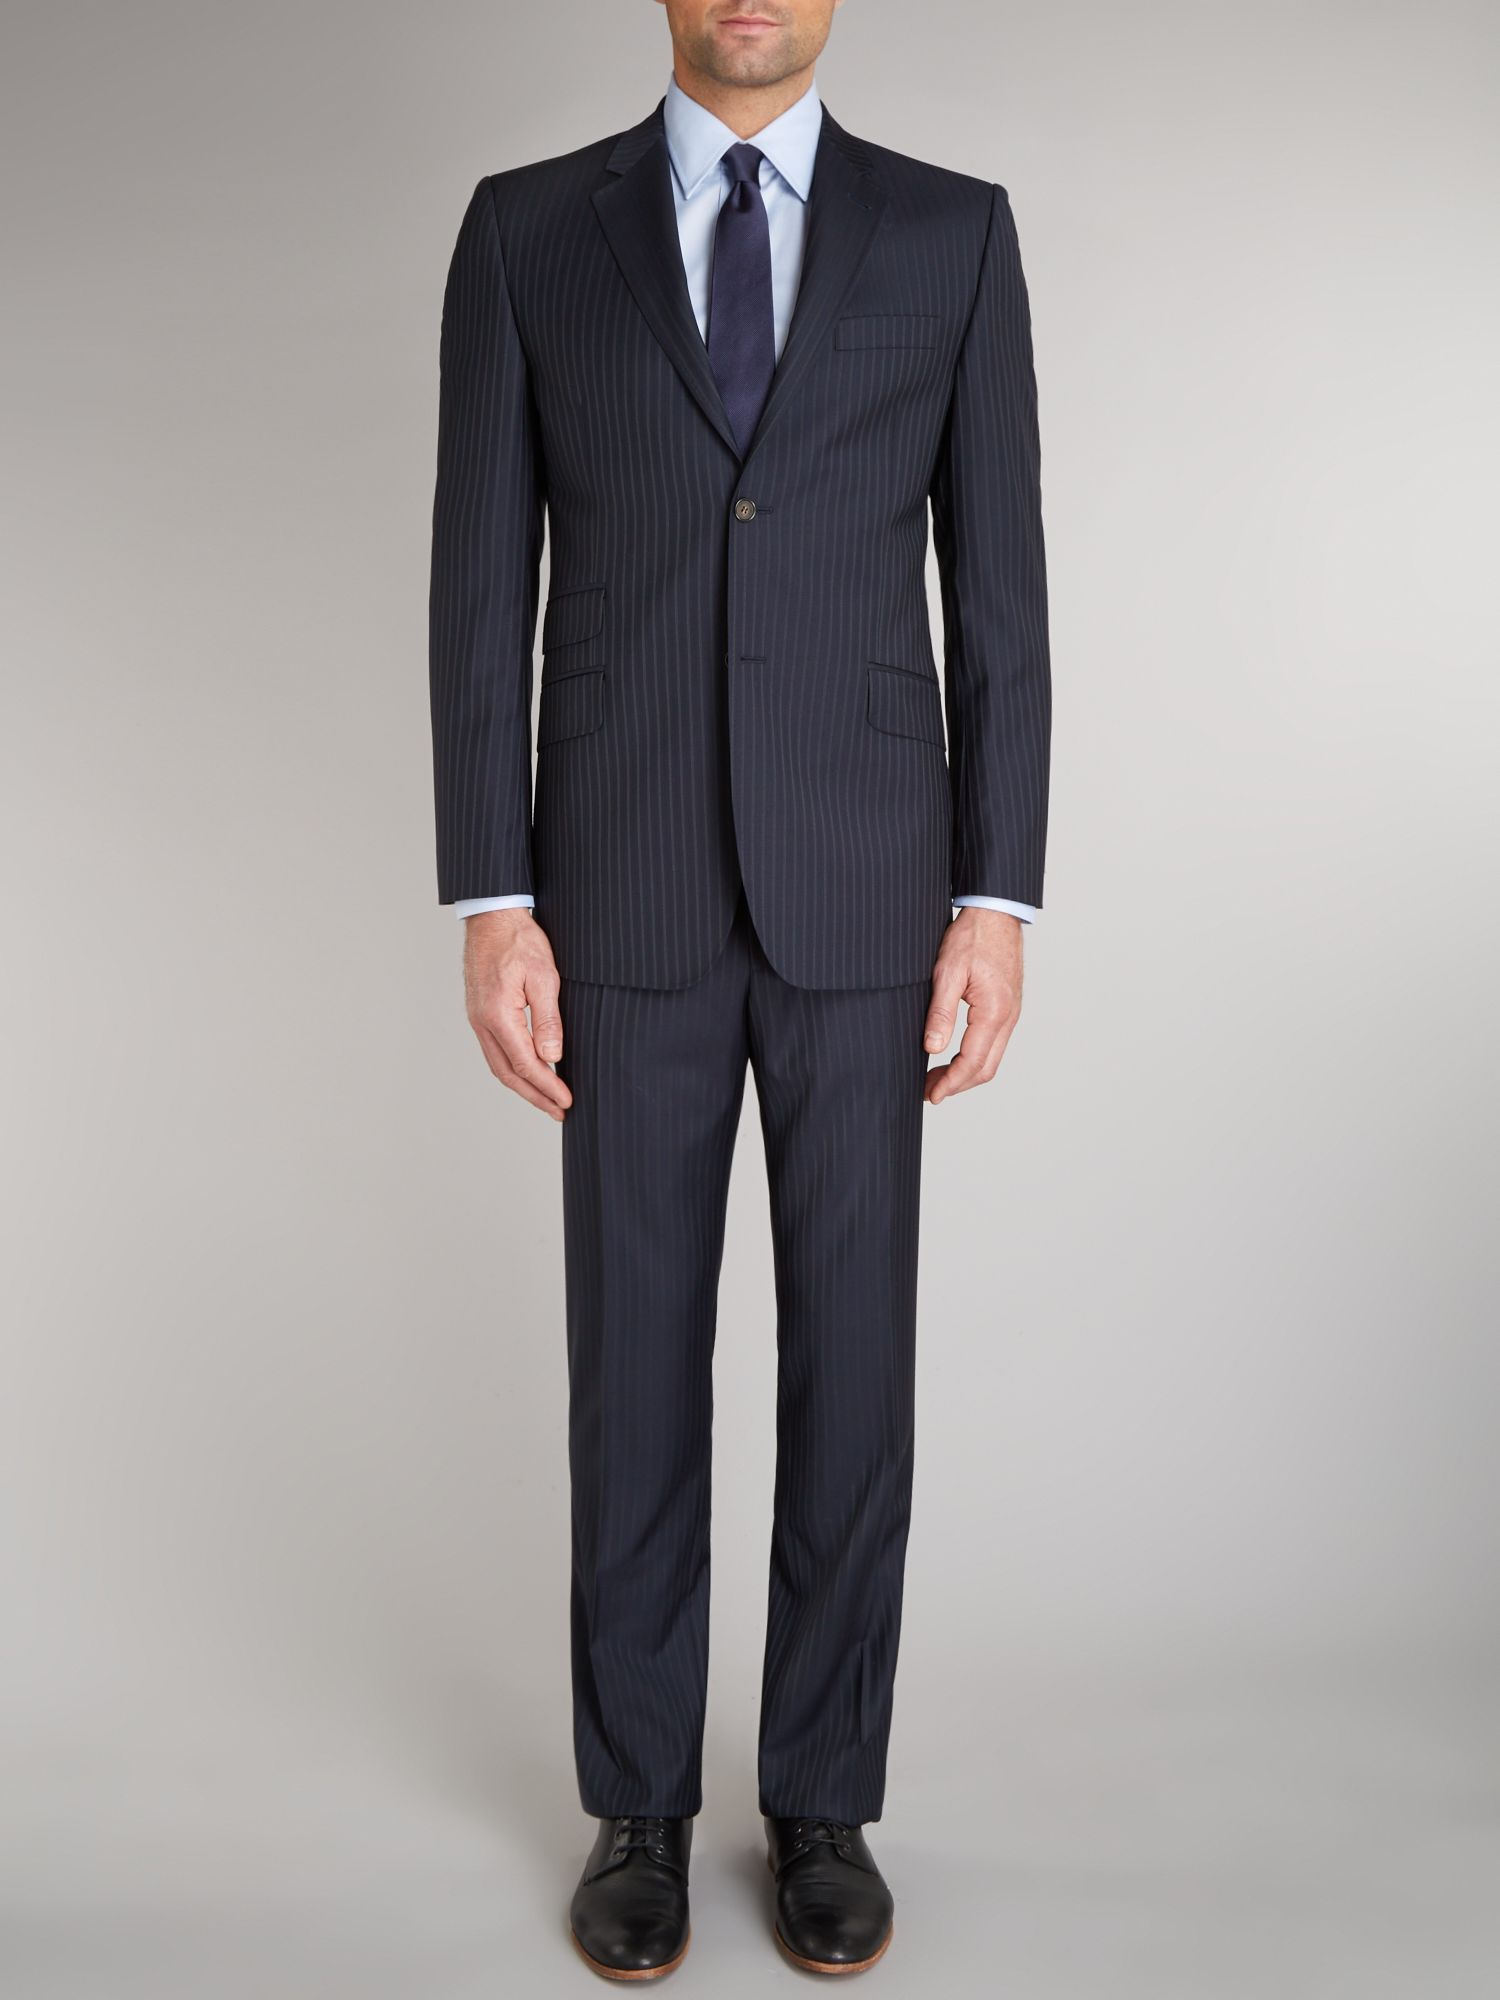 Francoz sterling regular fit pinstripe suit